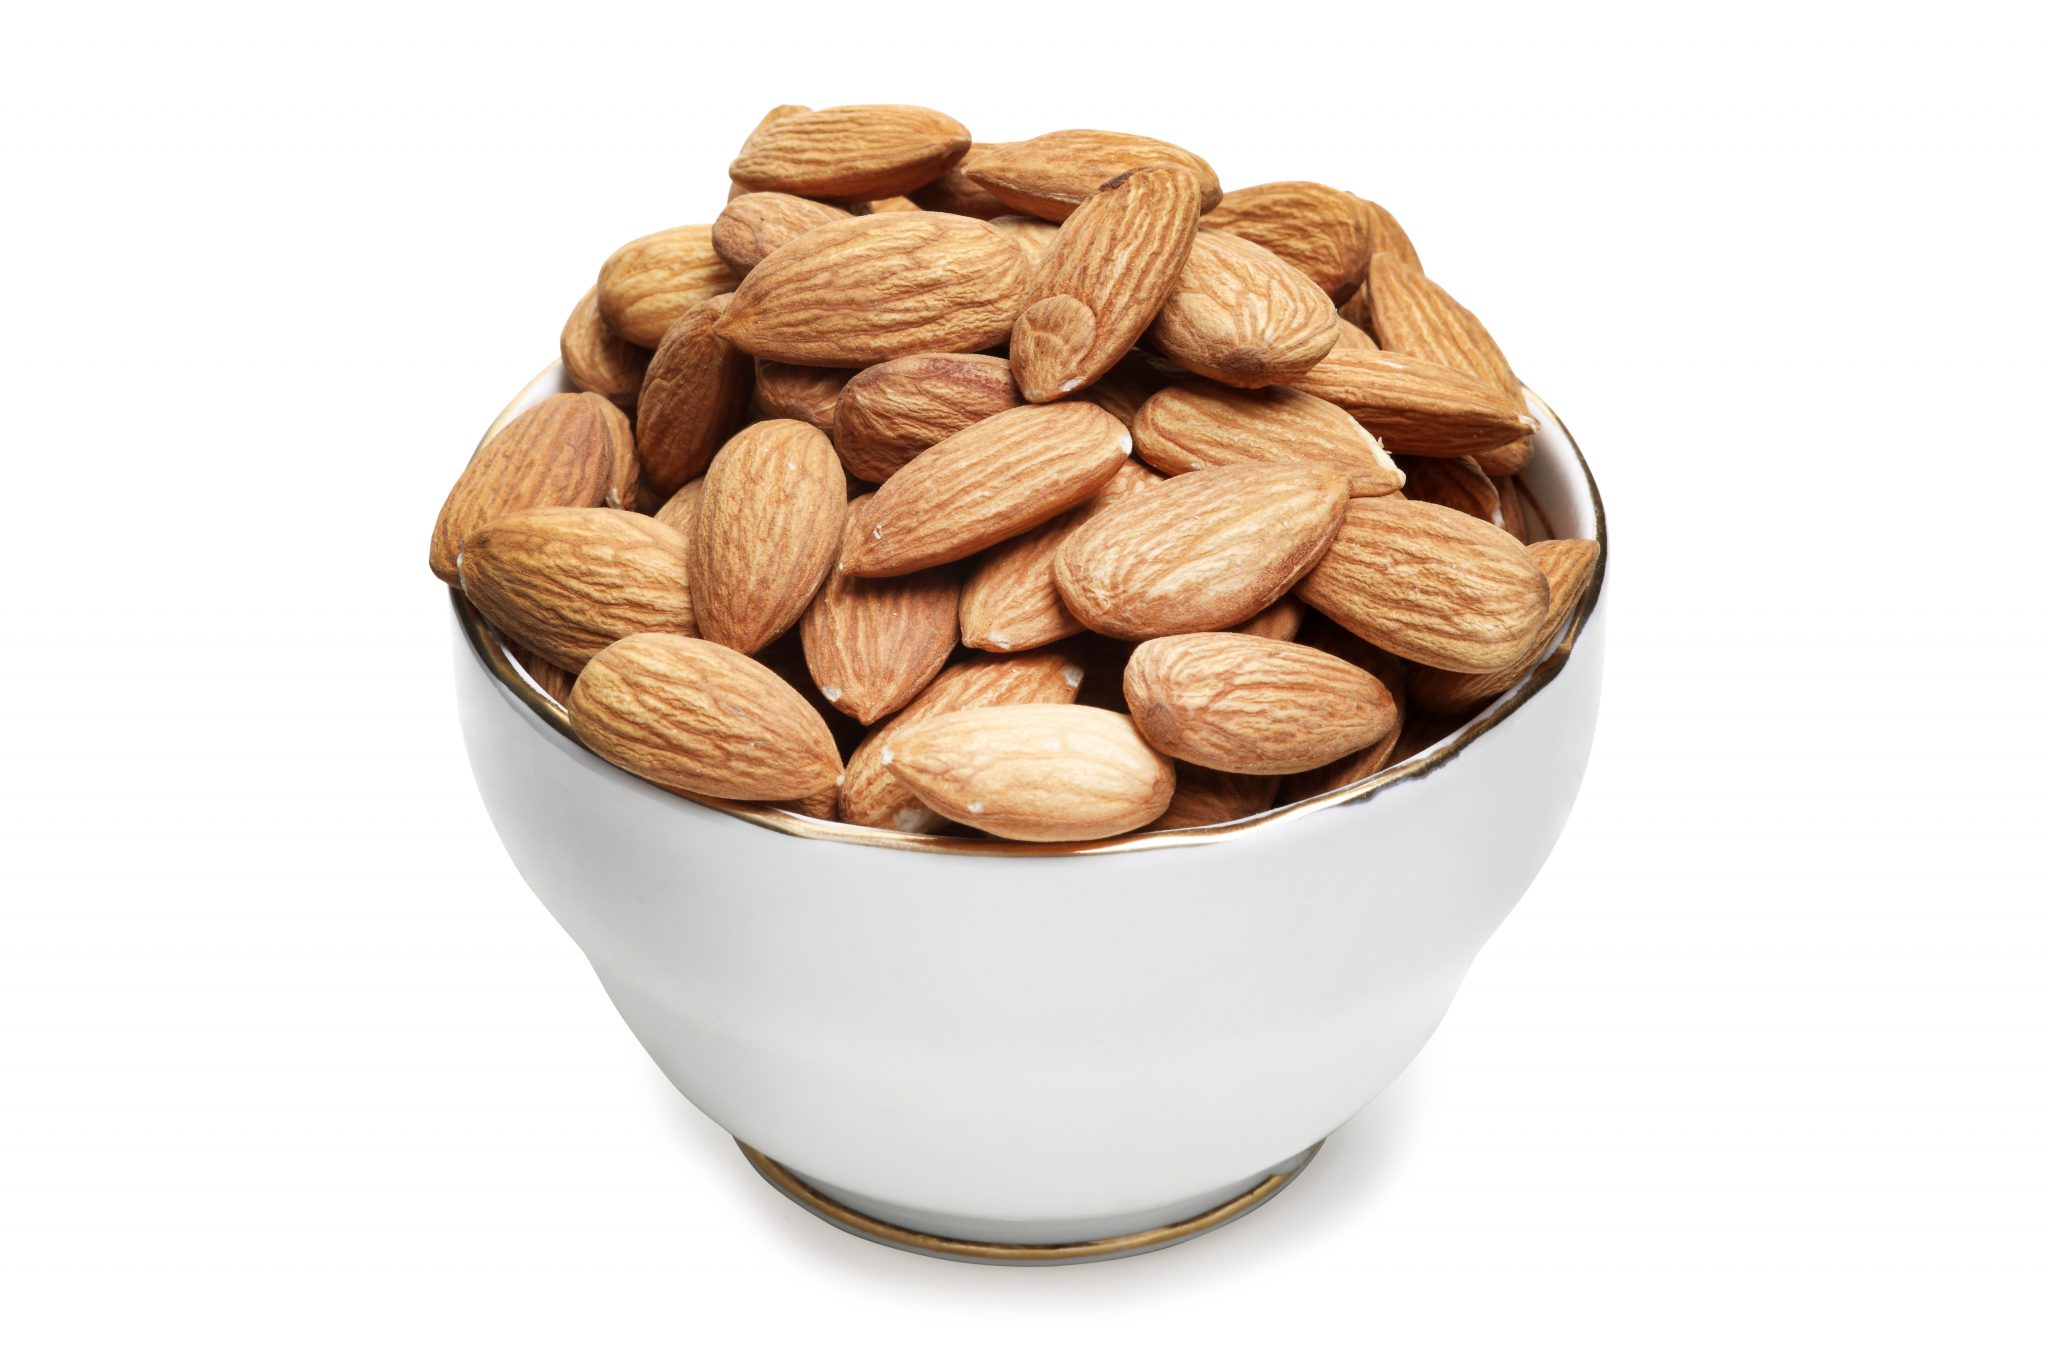 chandras healthy vegan snack almonds in a bowl